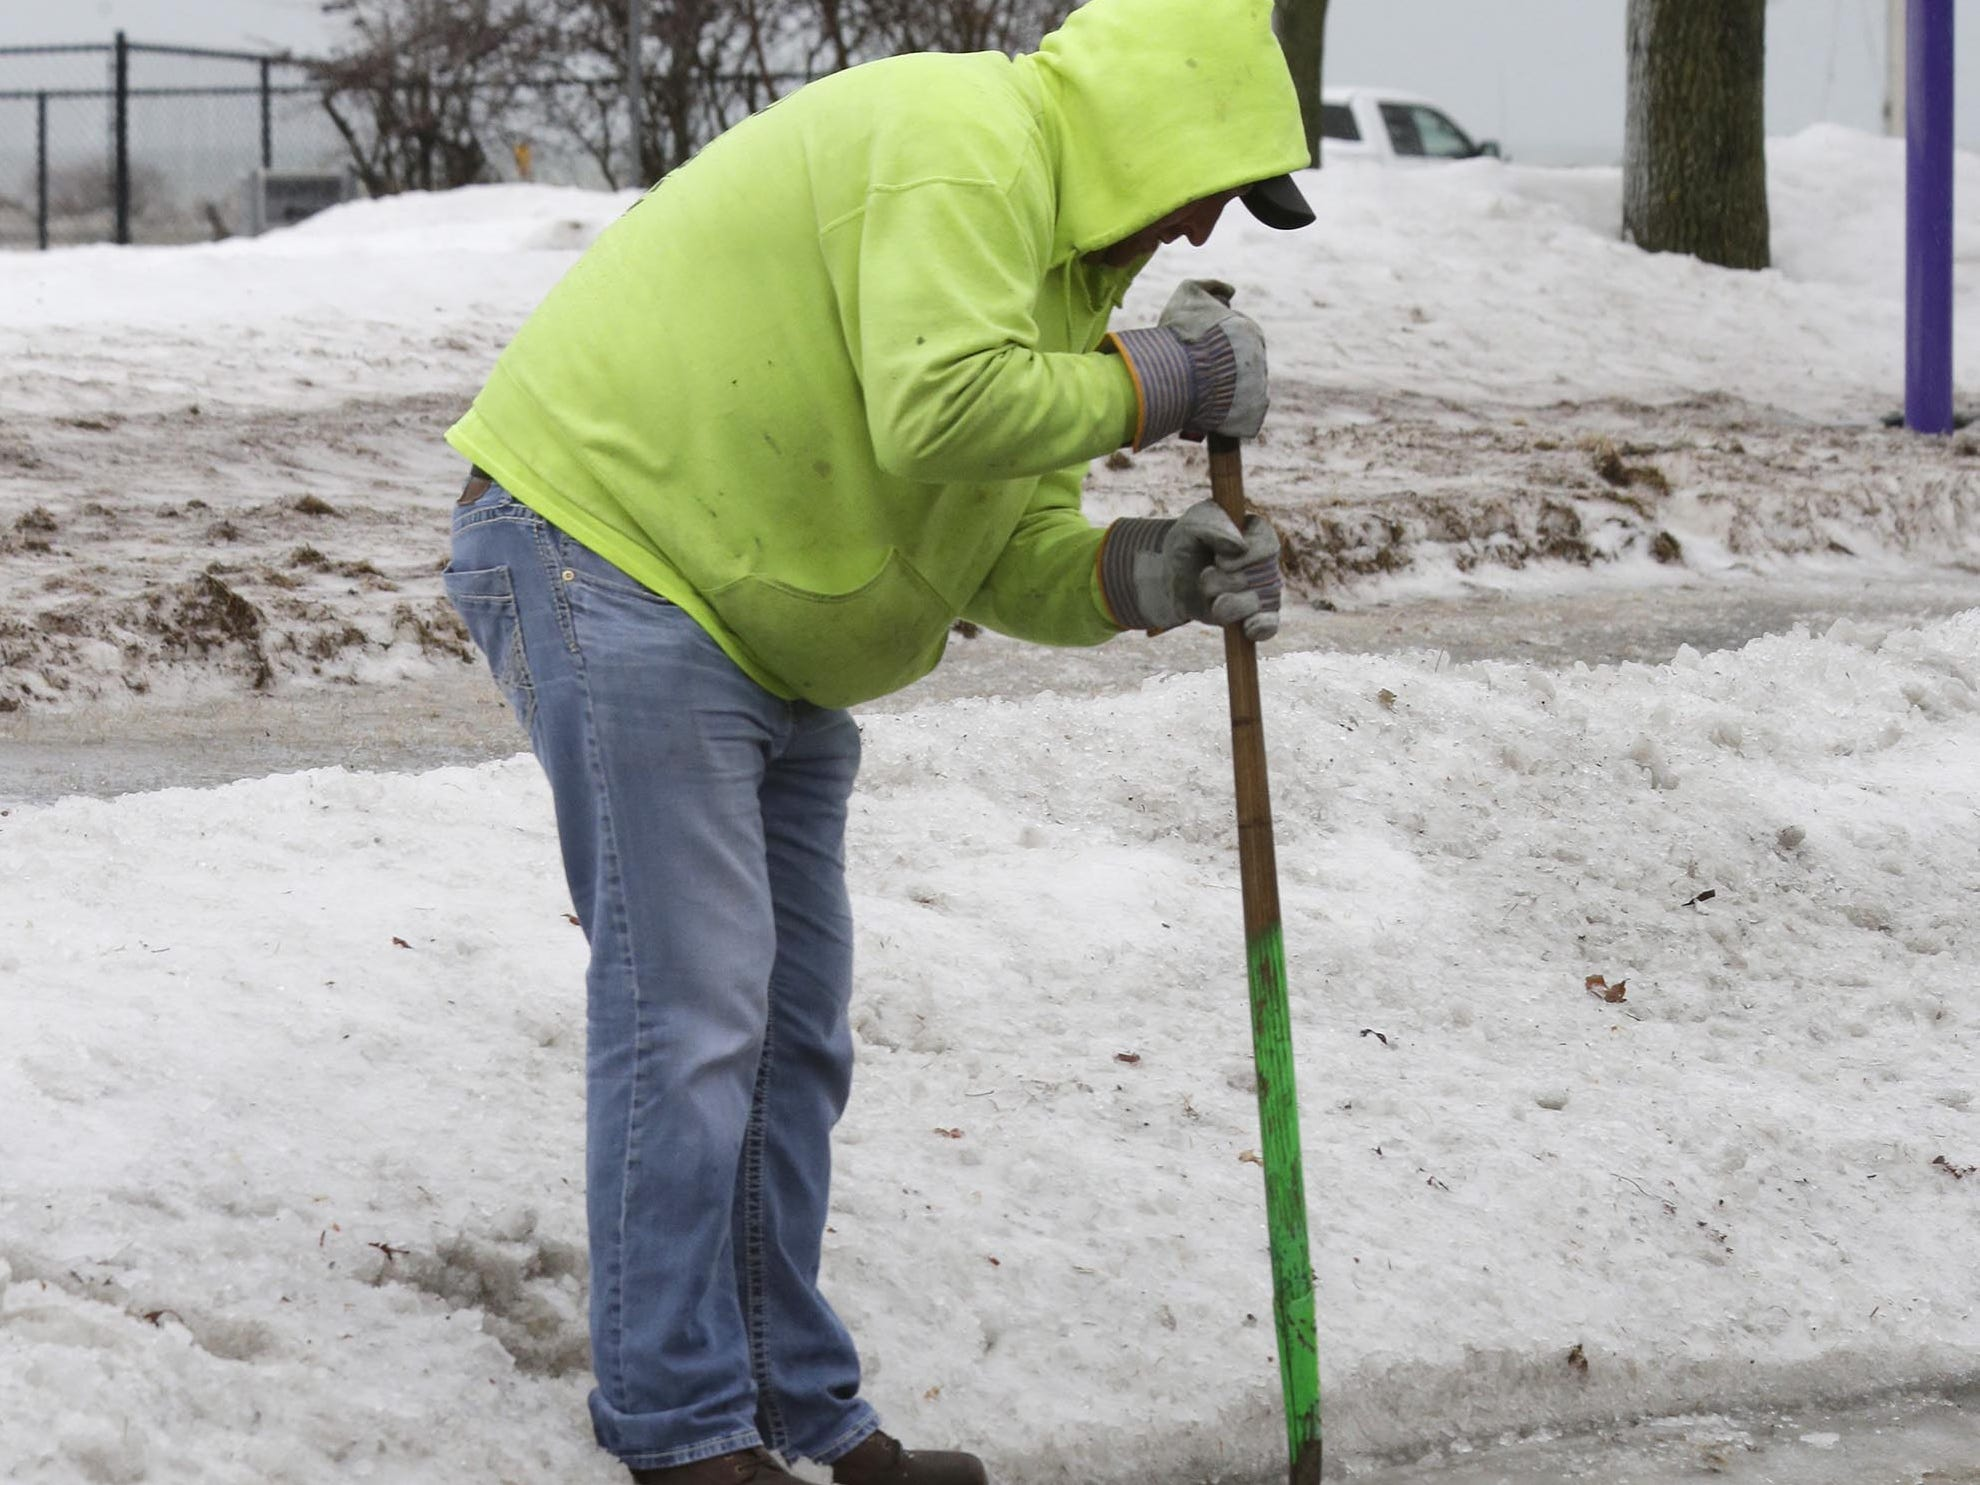 A City of Sheboygan public works employee,  who did not want to give his name, uses a shovel to unclog a drain on Broughton Drive, Tuesday, February 5, 2019, in Sheboygan, Wis. Early afternoon rain combined with frozen street drains caused localized flooding.